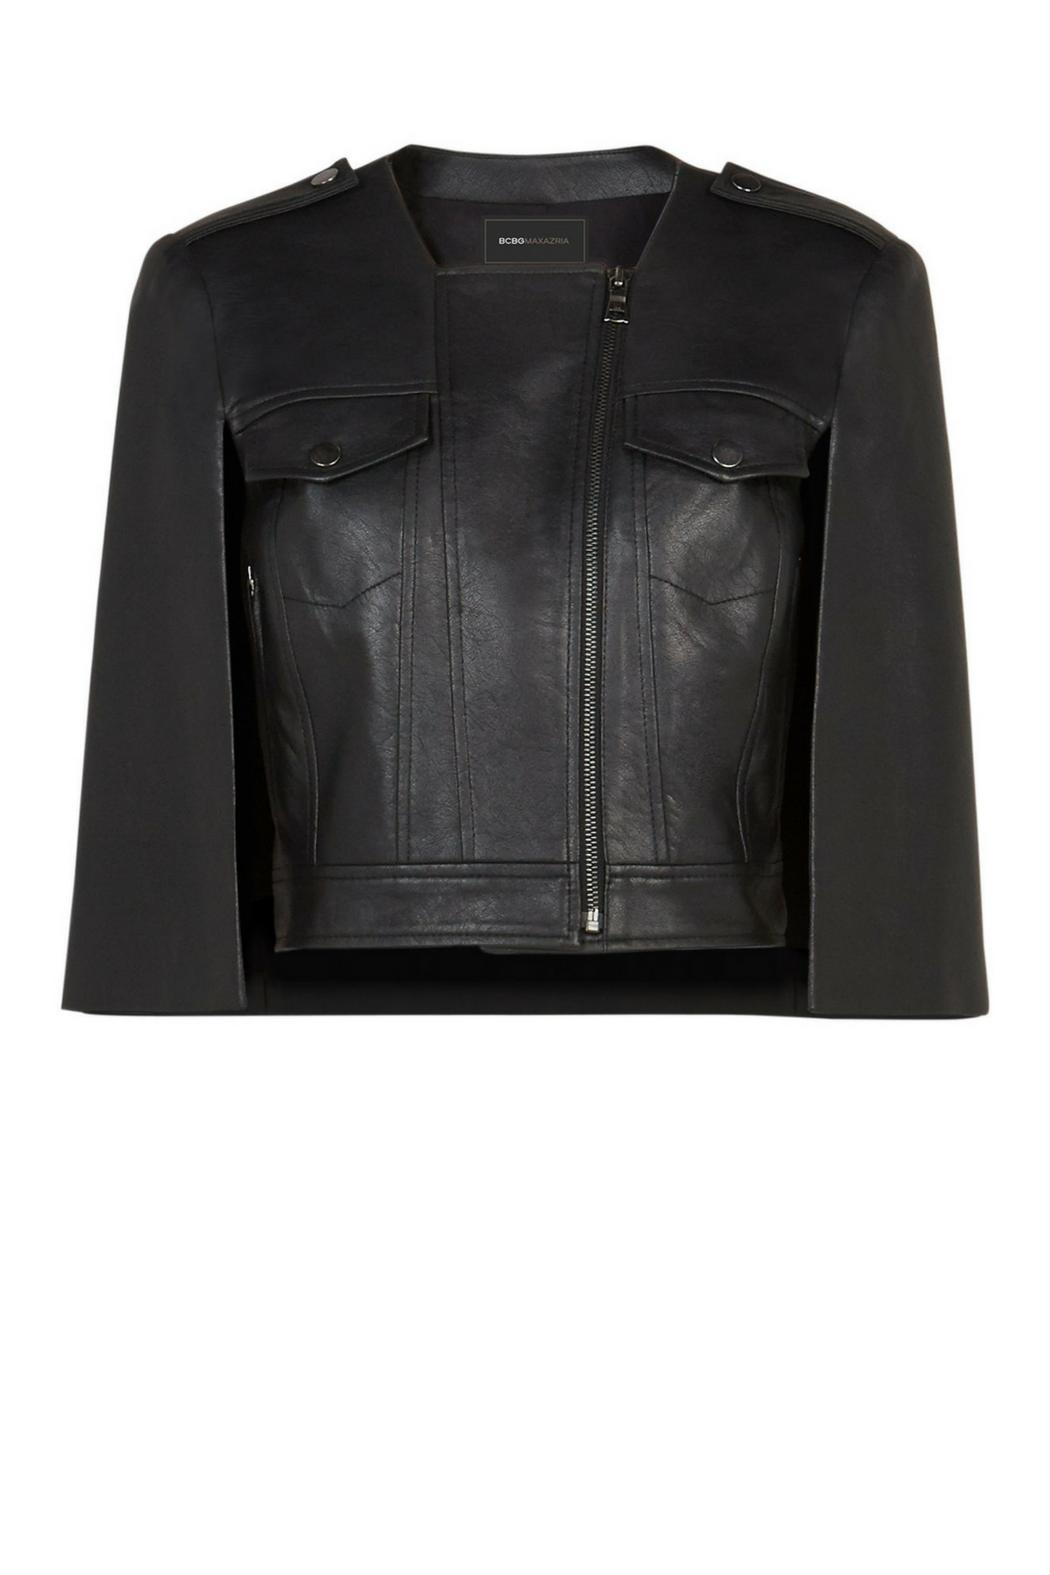 Bcbg Max Azria Cropped Faux Leather Cape From Orlando By